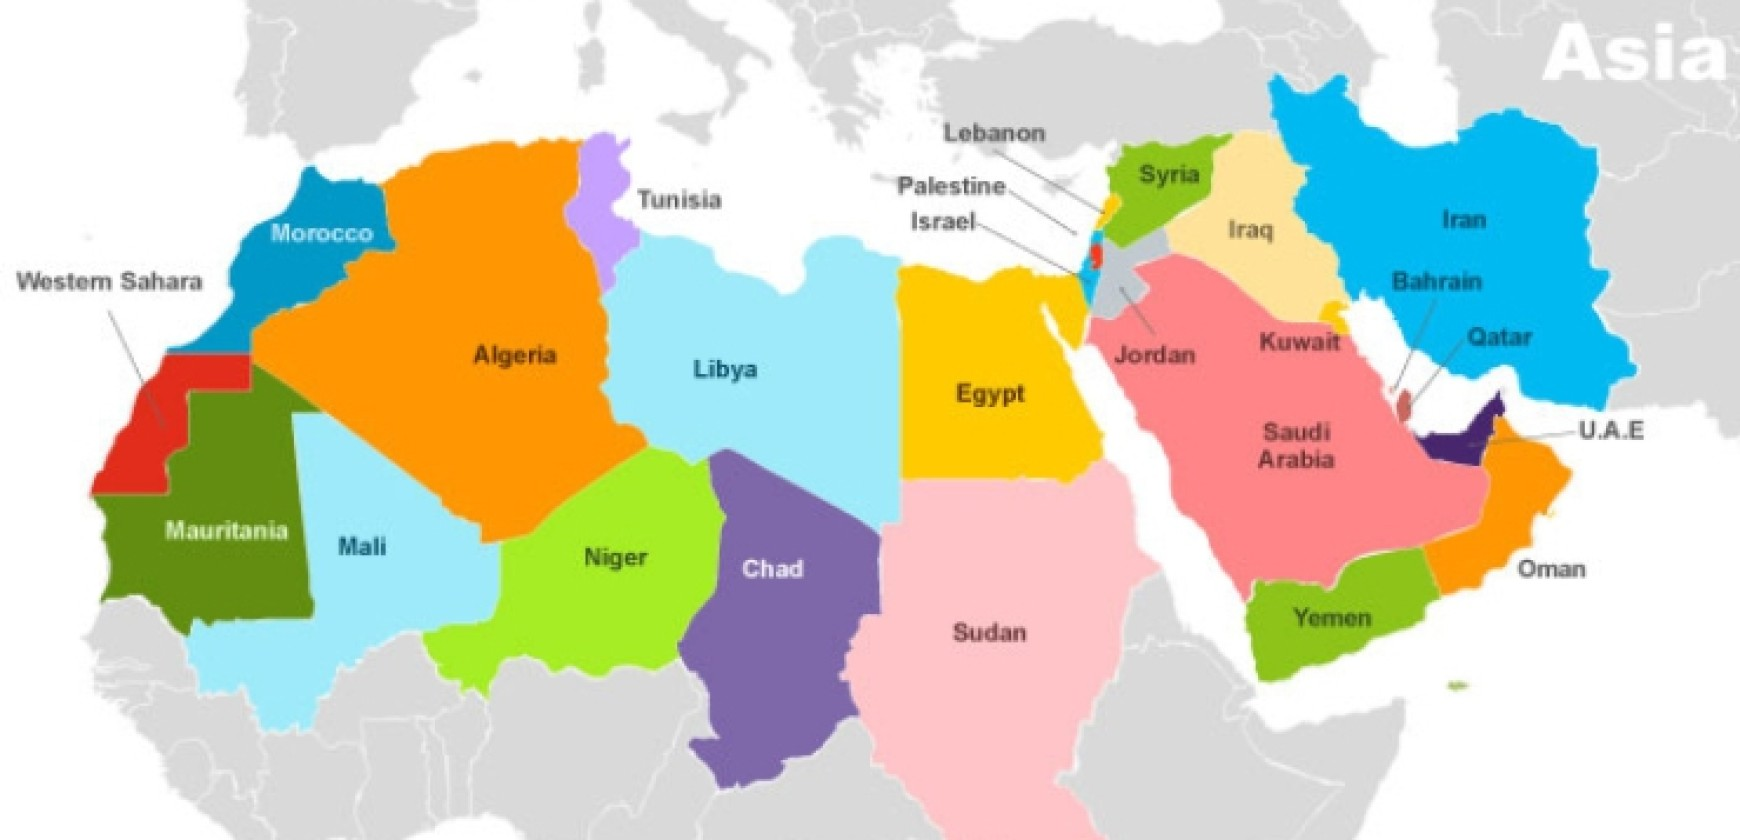 Middle East and North Africa (MENA)